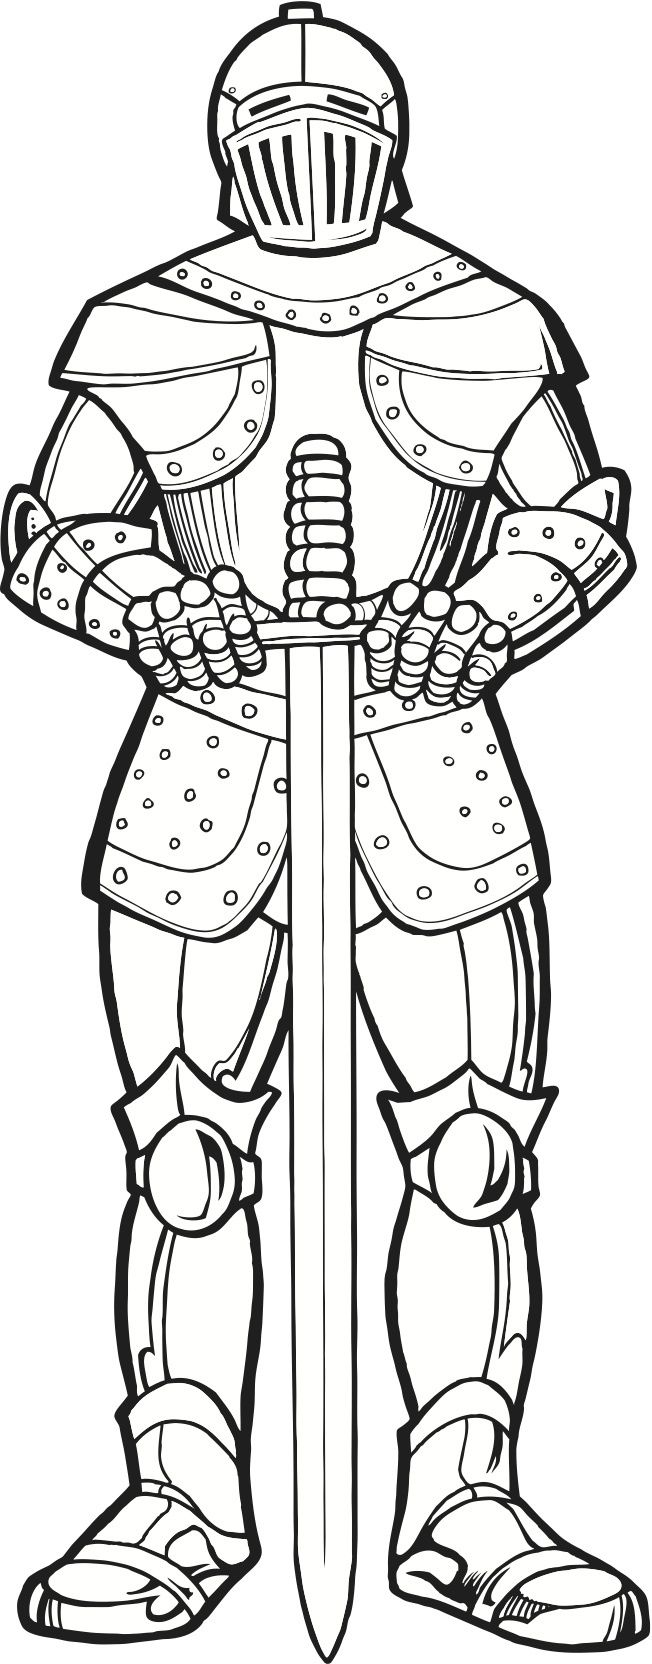 29fd9e2e3de211738faa950aaa3a162f Knights Coloring Pages